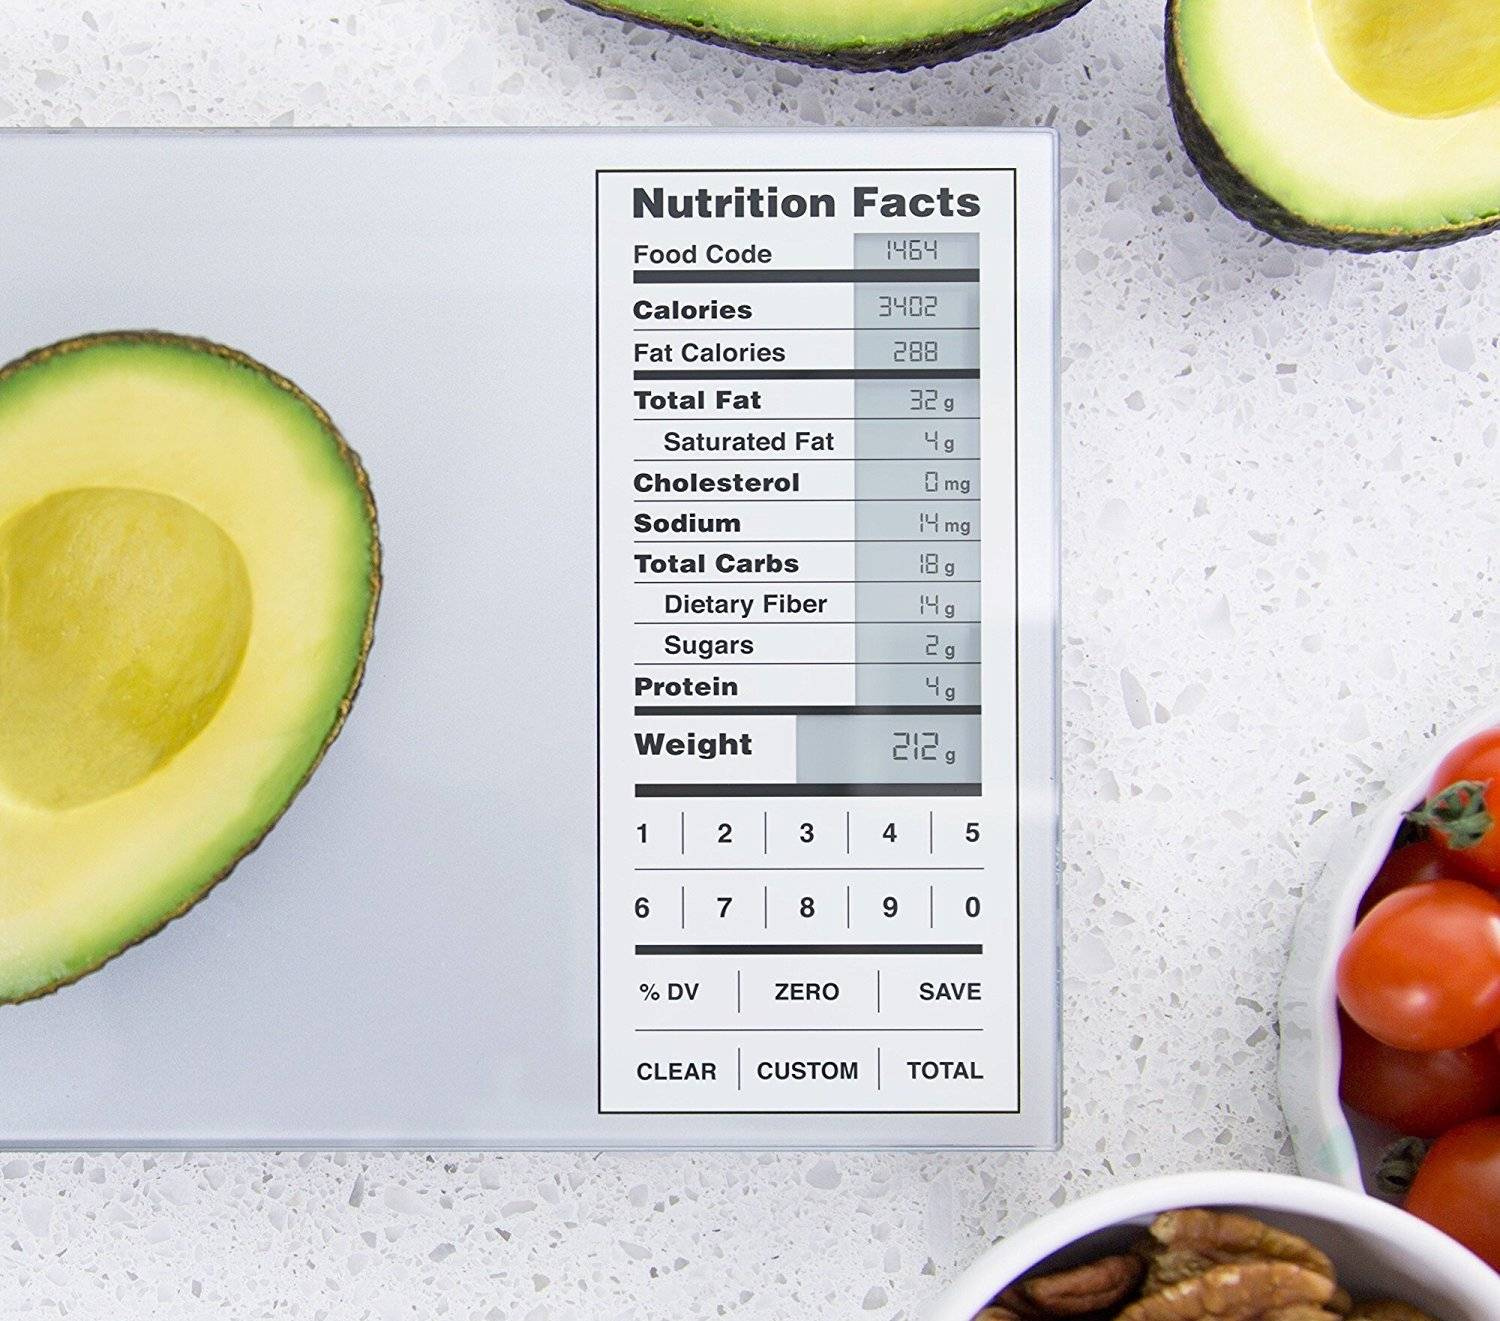 Greater Goods Nourish Digital Kitchen Food Scale